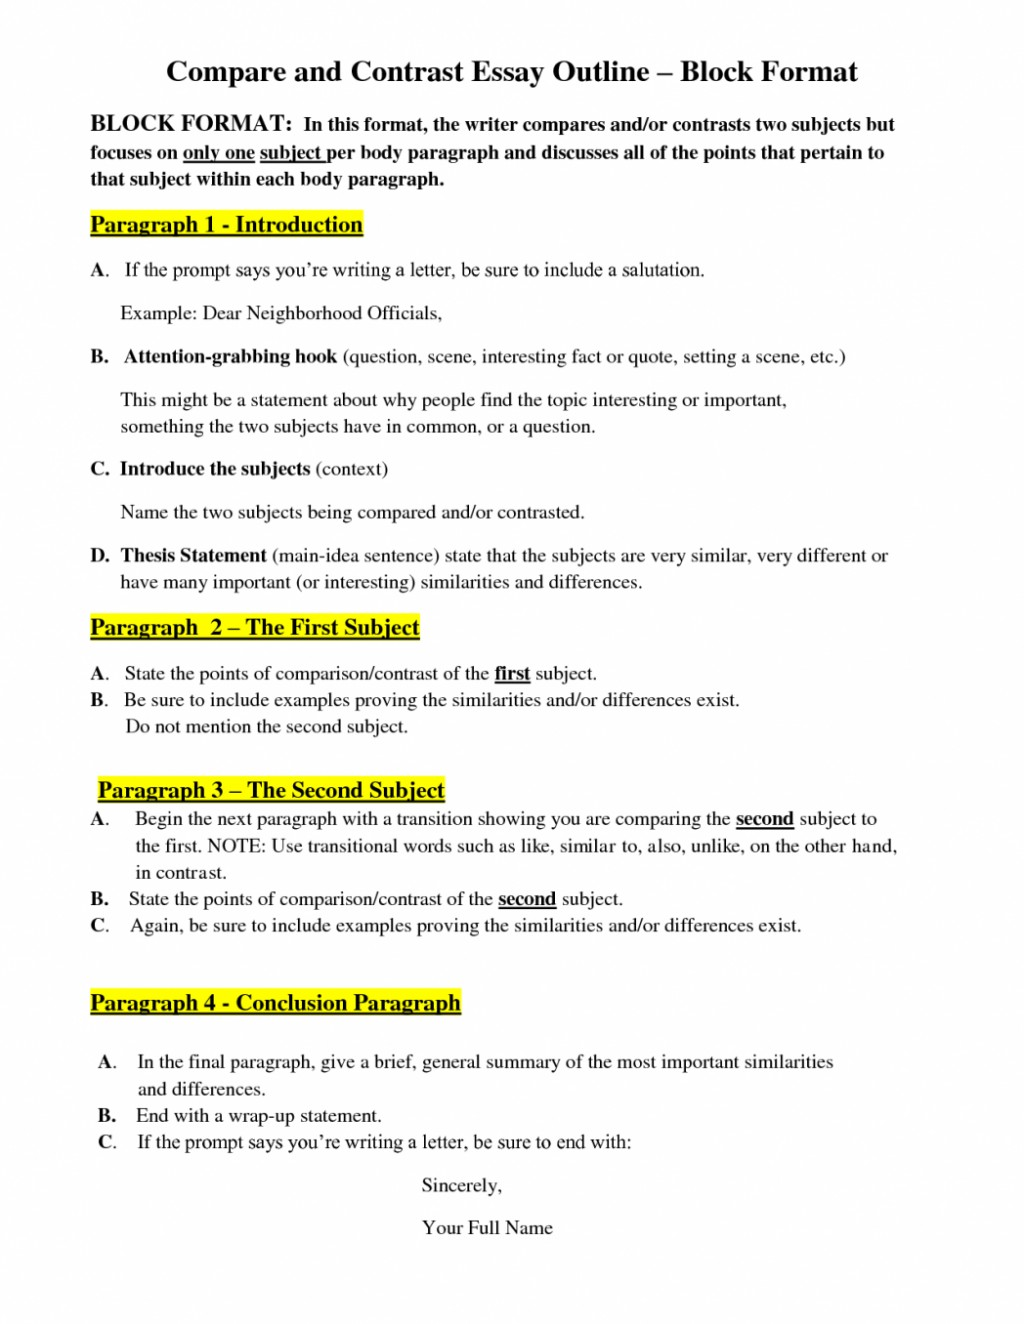 007 Essay Example Essays Compare And Contrasts For Year College Vs Outline Block 1048x1356 Comparison Best Contrast Sample Examples High School Pdf Large